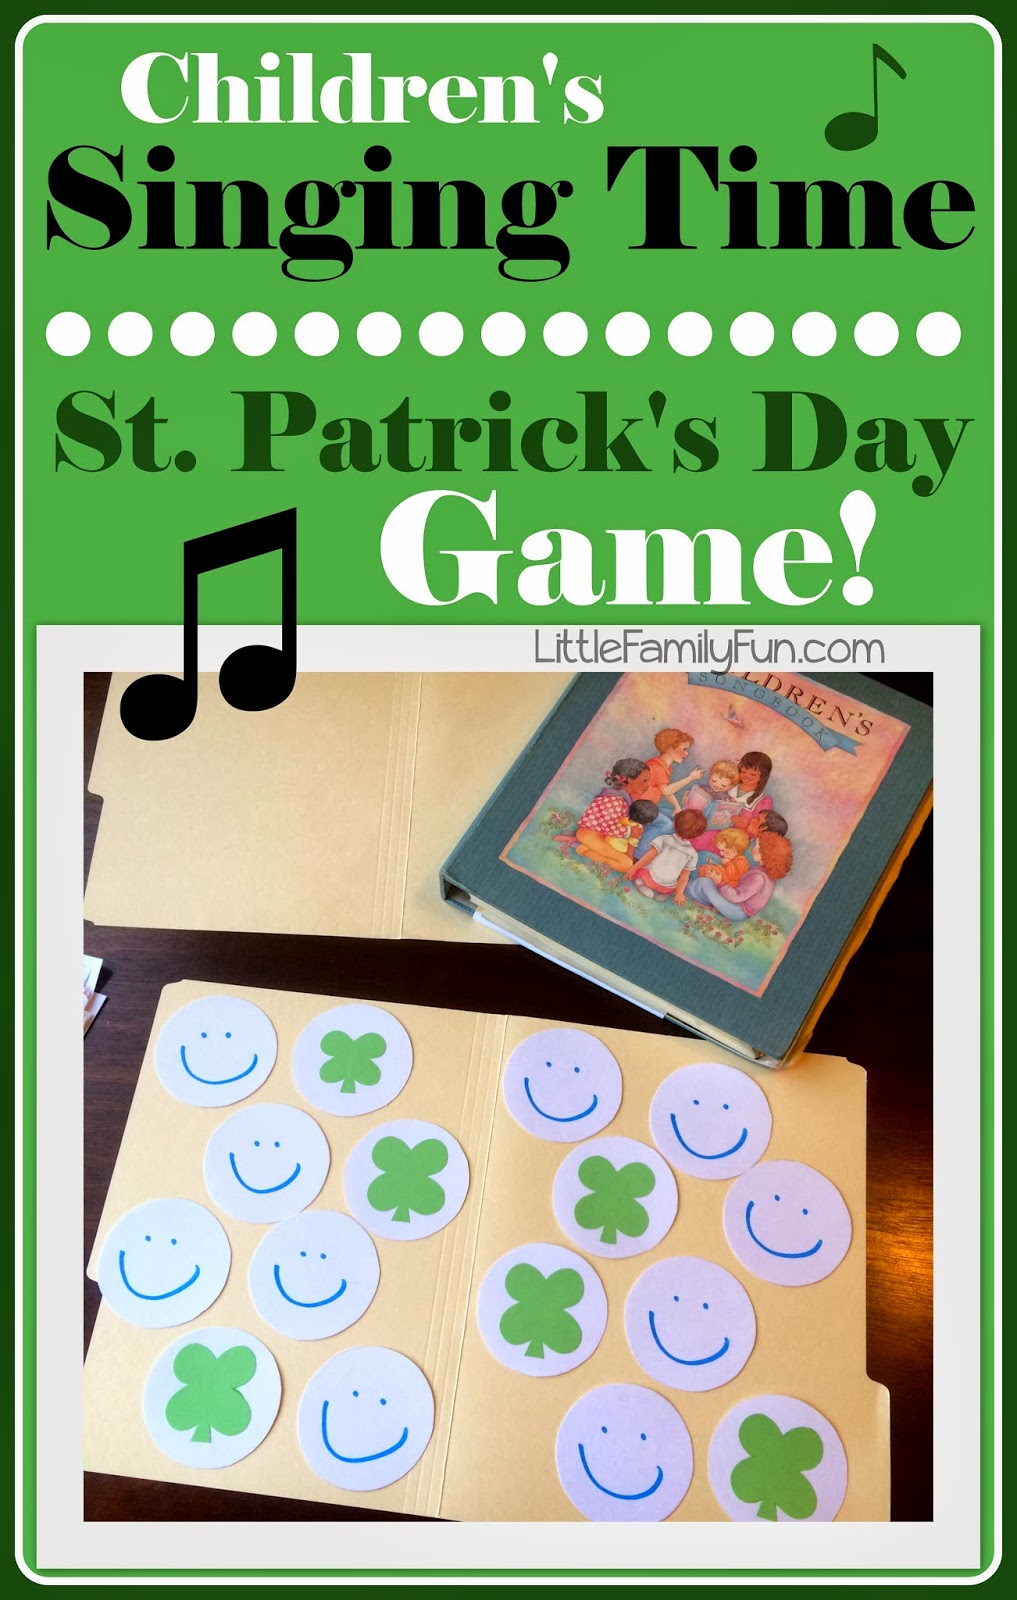 http://www.littlefamilyfun.com/2014/03/singing-time-st-patricks-day-game.html